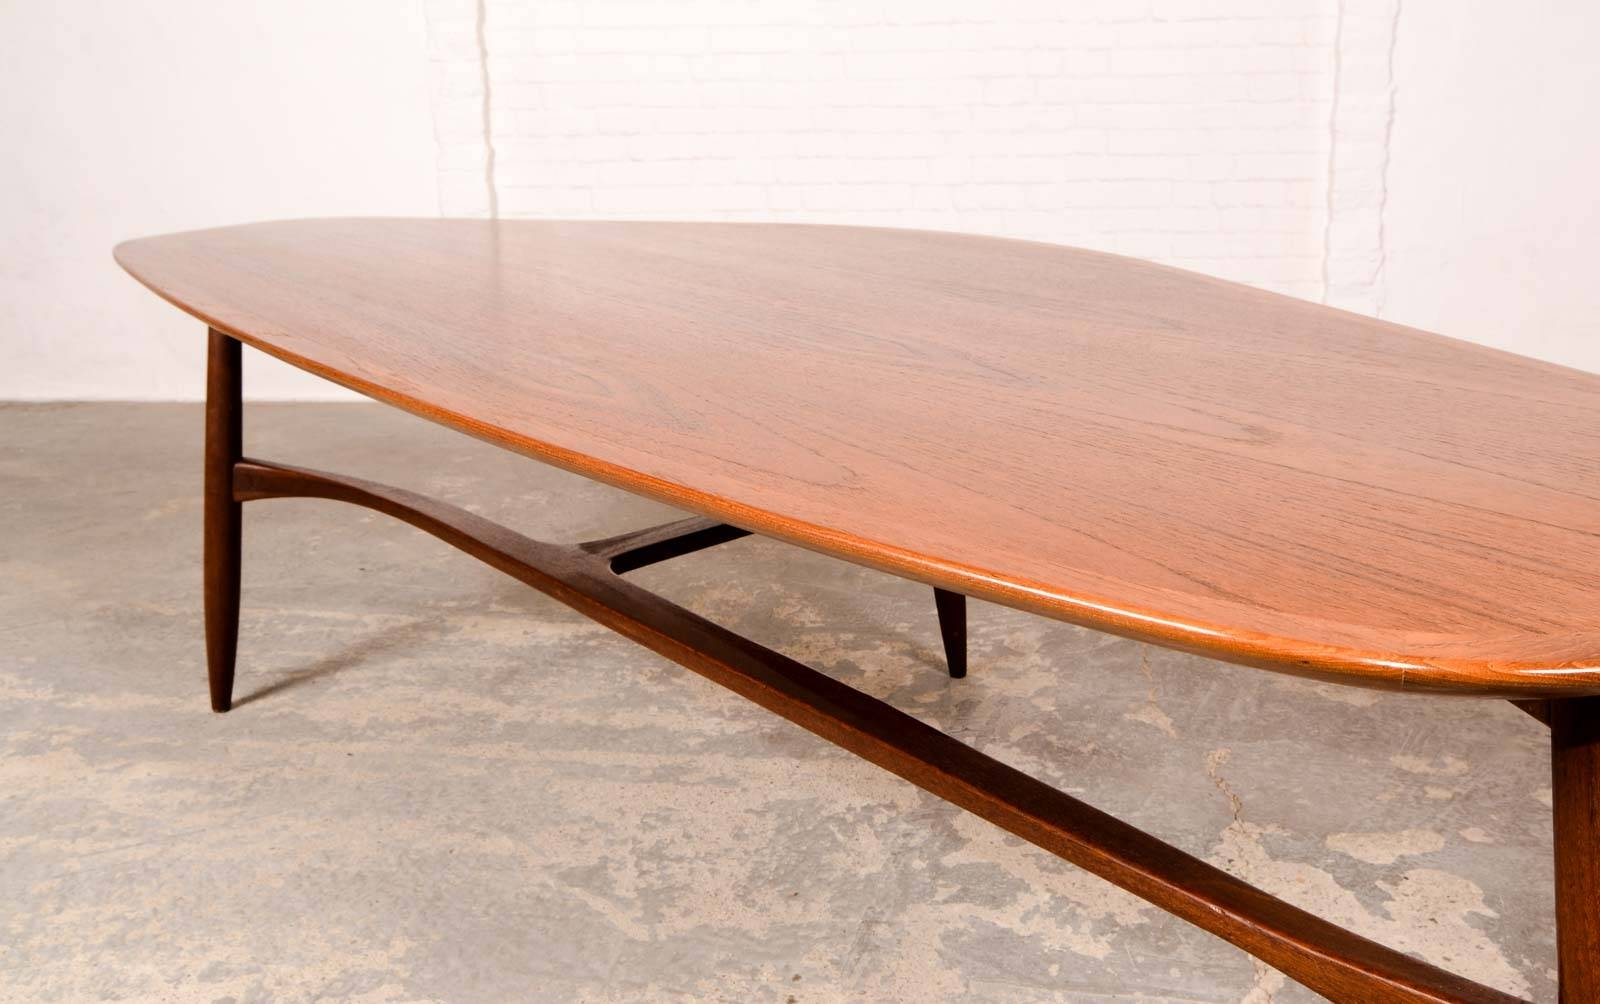 Free Form Shaped Kidney Coffee Table Designedsvante Skogh with regard to Free Form Coffee Tables (Image 11 of 30)